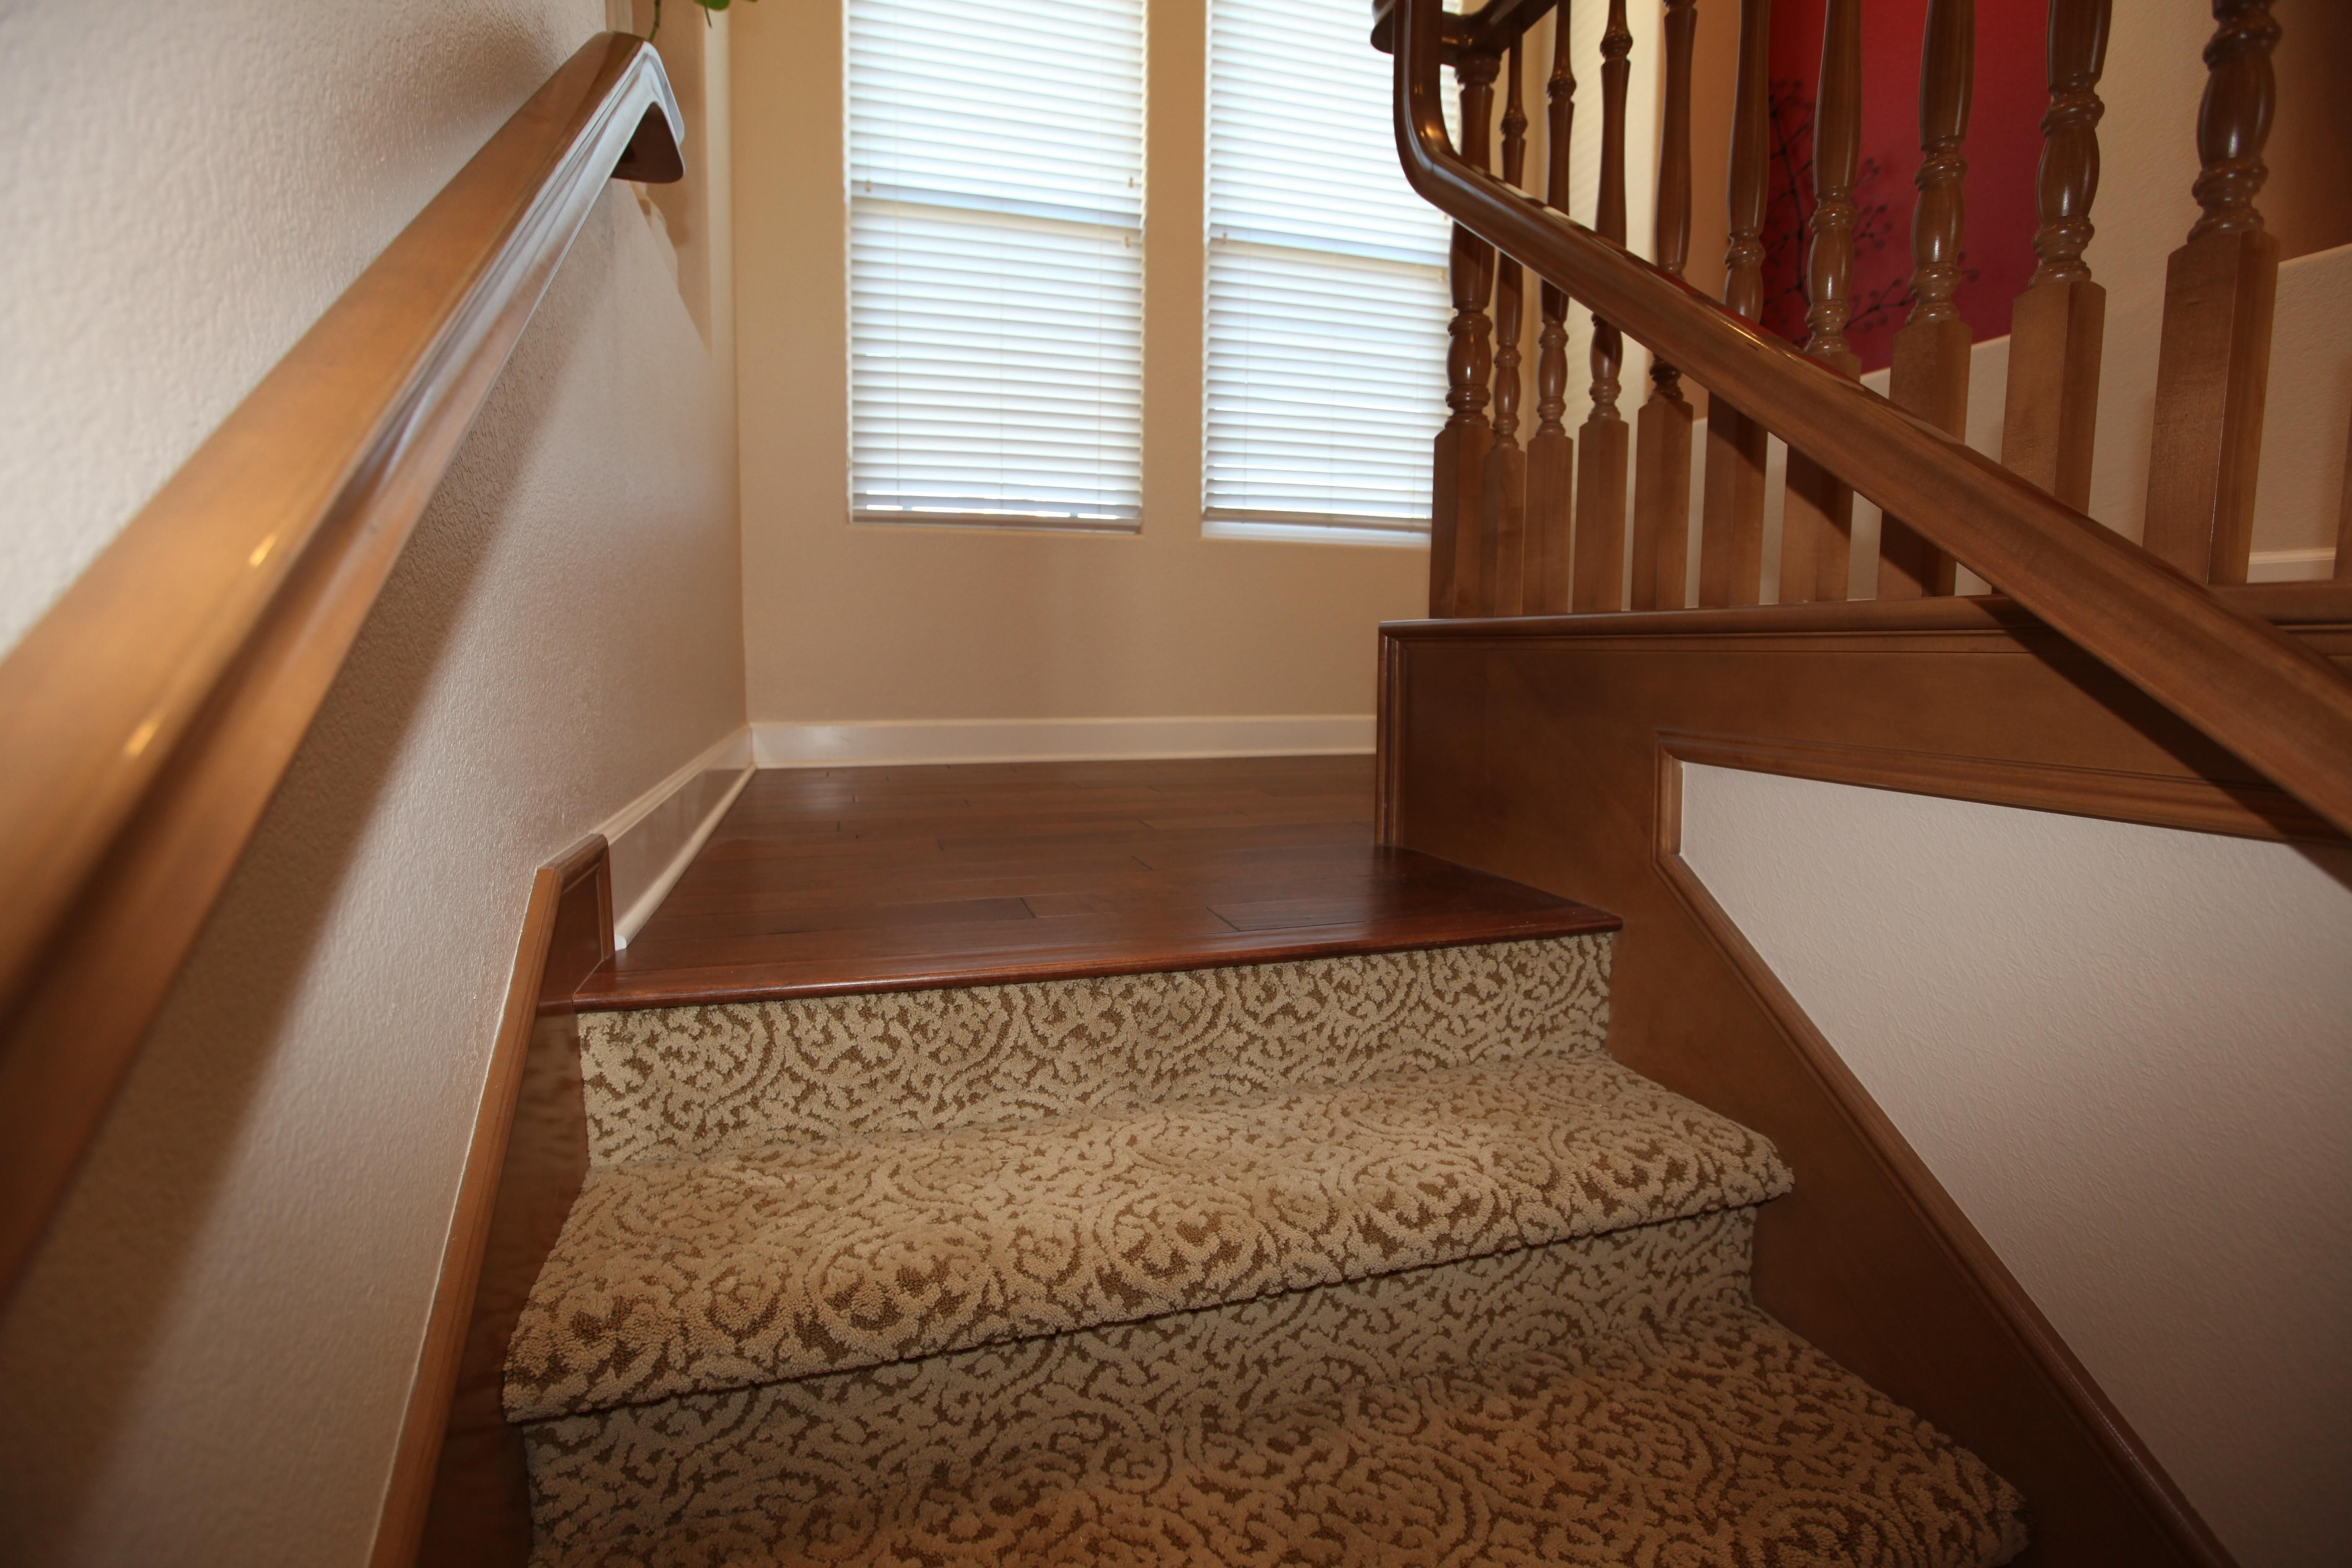 Carpet Stairs To Wood Floor Transition Wood Flooring Is The Most   Hardwood Floors And Carpet Stairs   Top Step Carpet   Middle   Decorative   Wood   Colour Wall